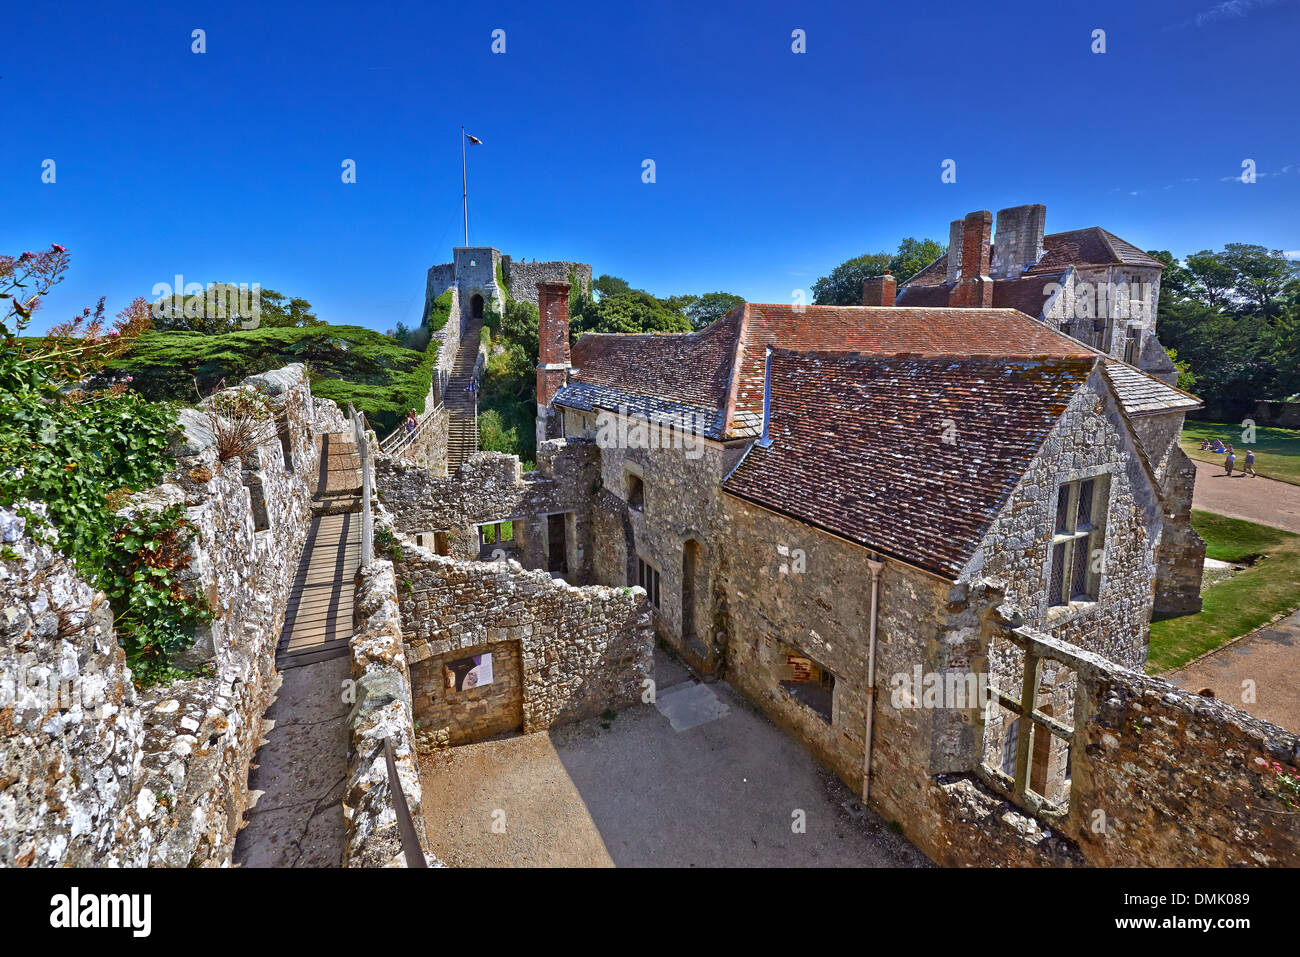 Carisbrooke Castle is a historic motte-and-bailey castle located in the village of Carisbrooke - Stock Image